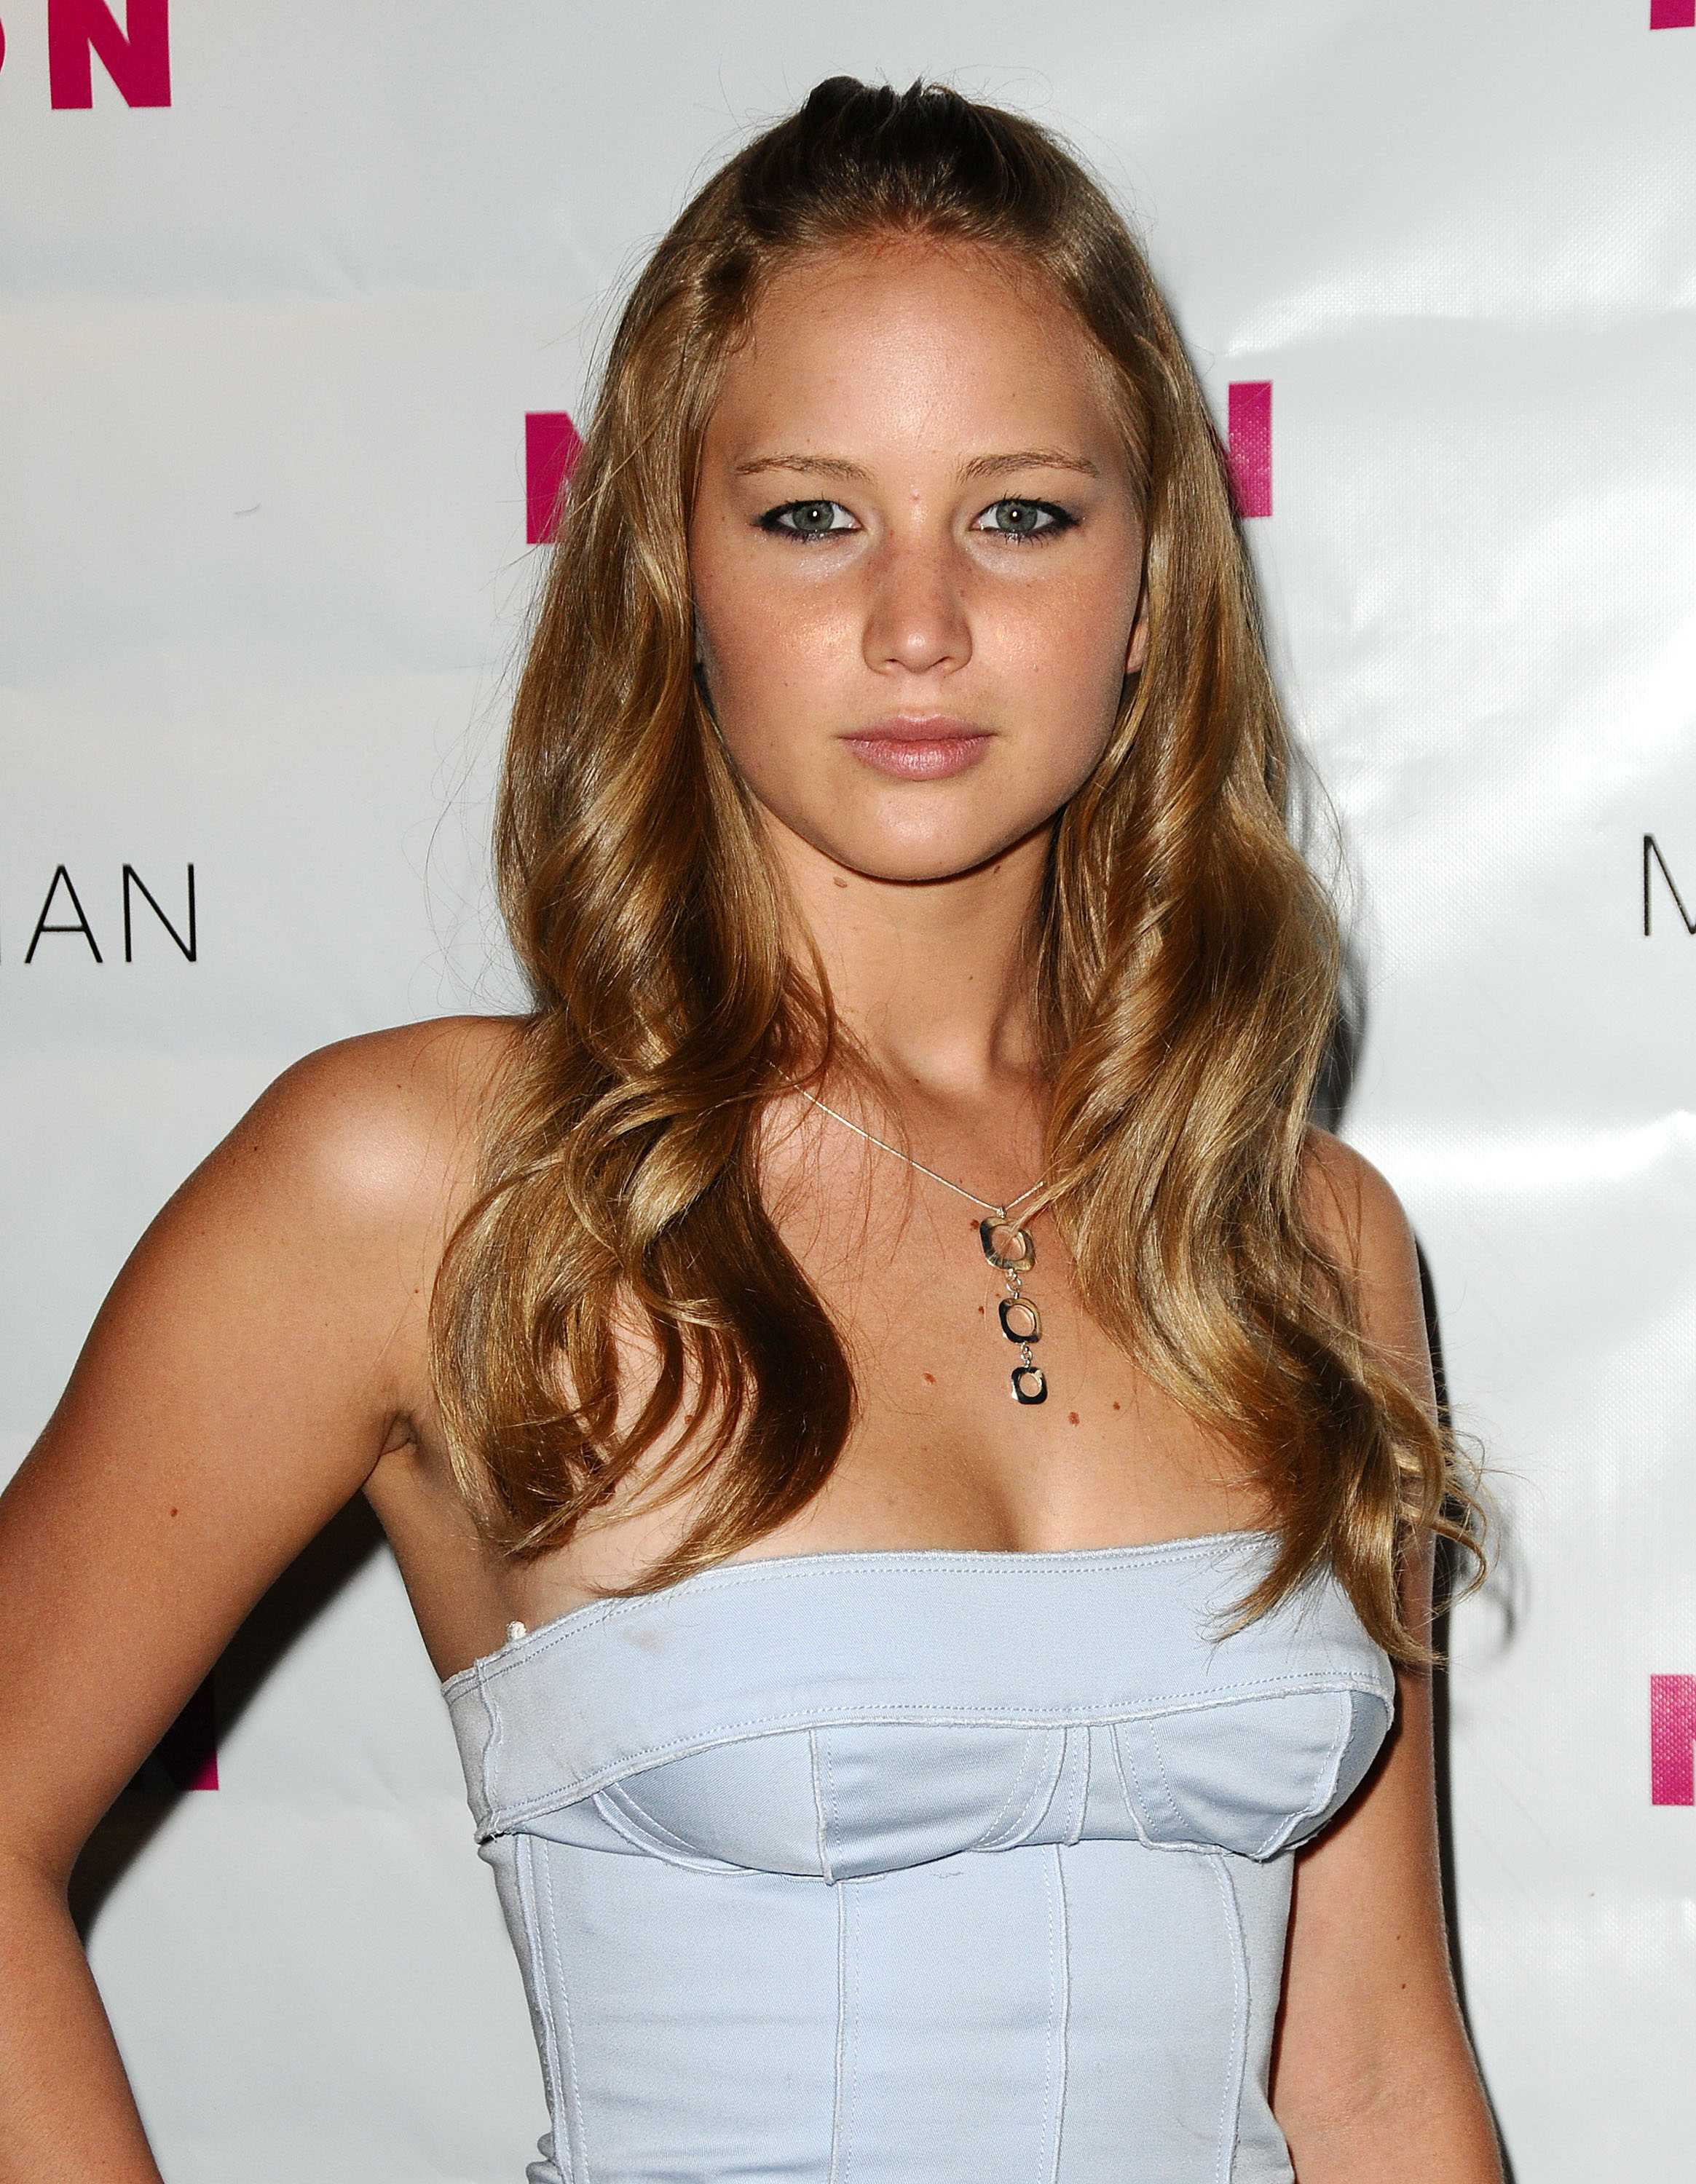 Jennifer Lawrence at Nylon Magazine's TV Issue launch party at SkyBar on Aug. 24, 2009 in Los Angeles.